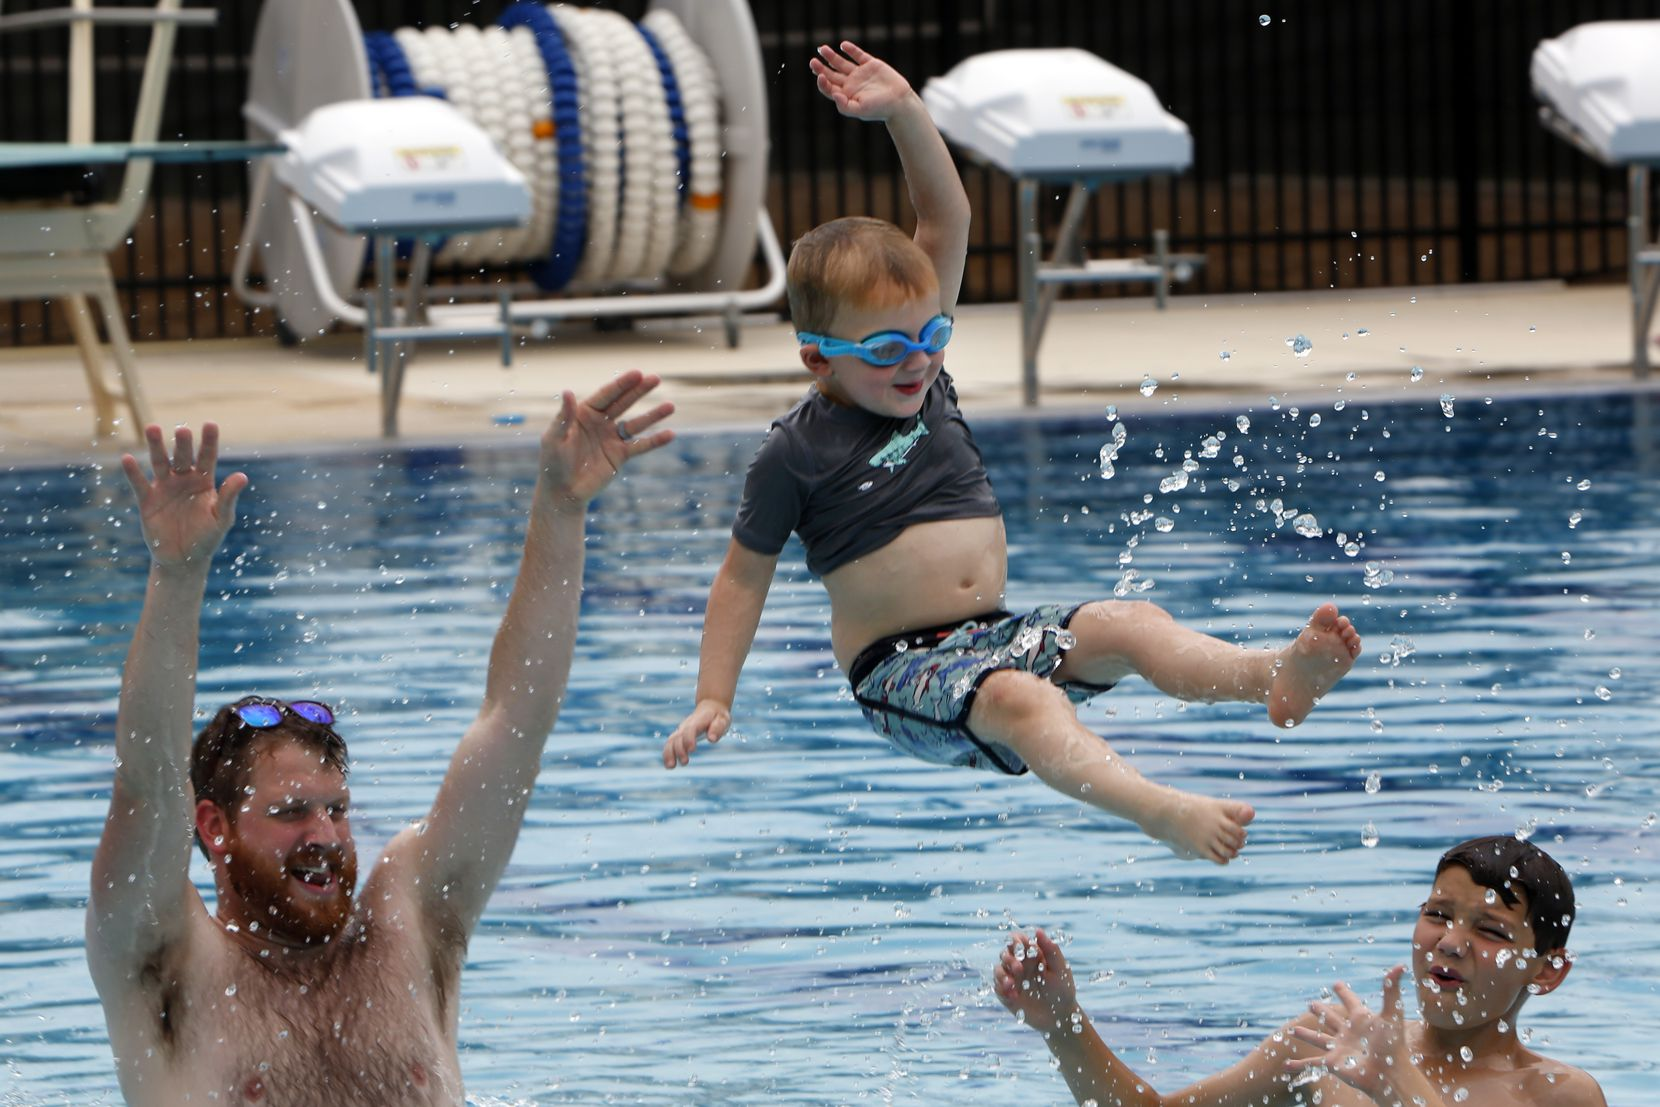 Zeke Koelpin, 3, mimics the form of a bull rider as he flies through the air after being launched by dad Micah as Elijah,11, looks on.